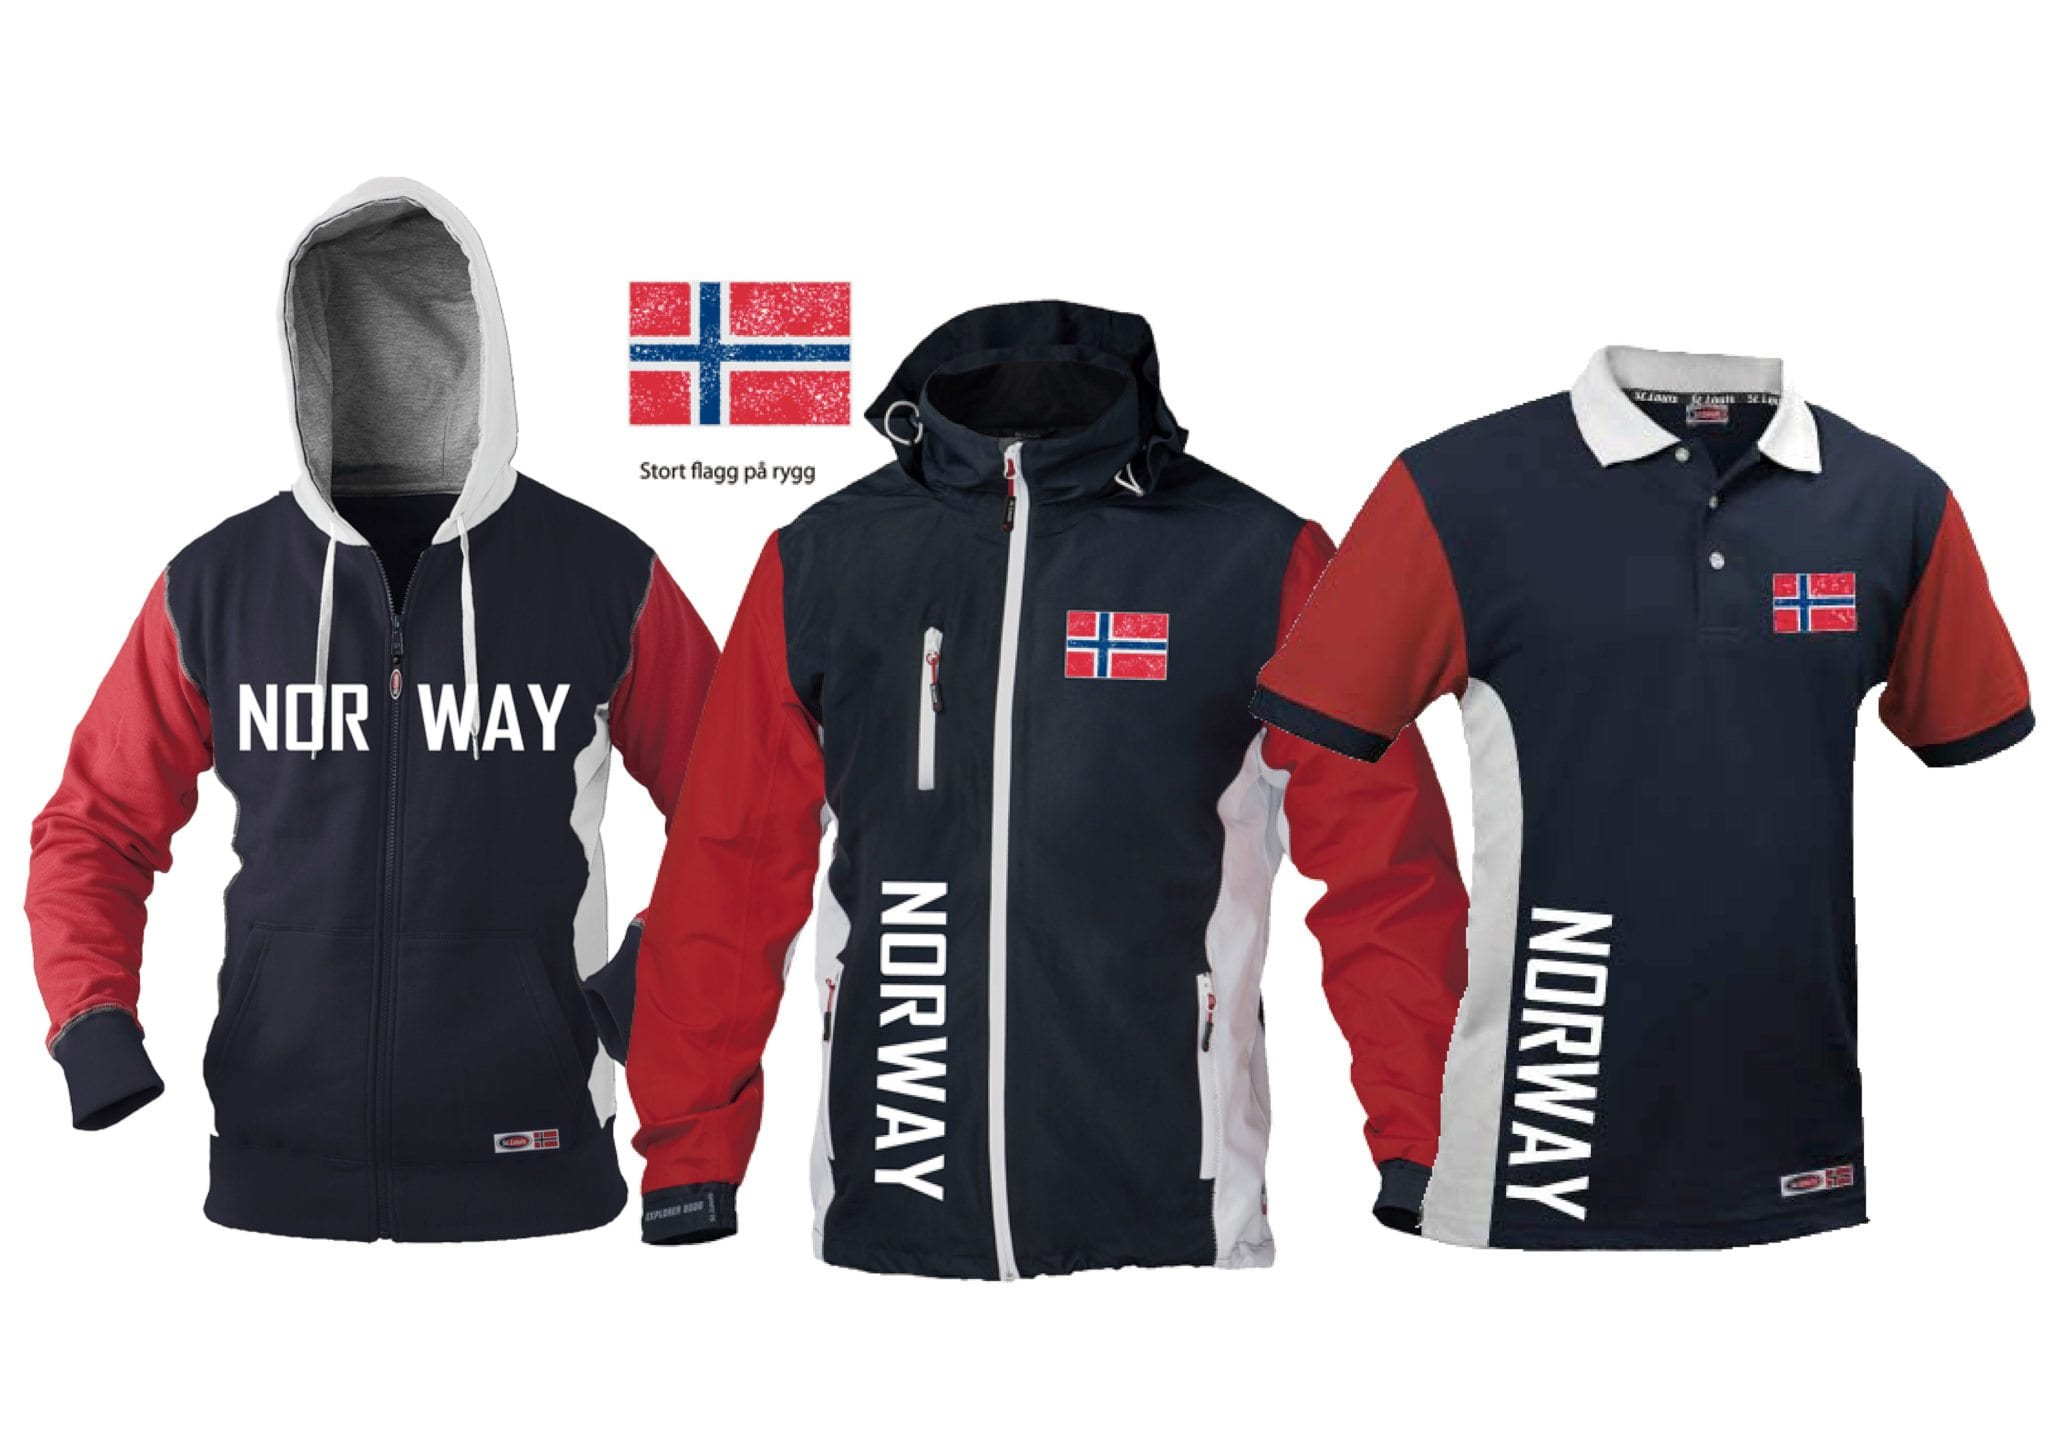 norway_trykk_hoodies_t-shirts_patriot1_sarpsborg